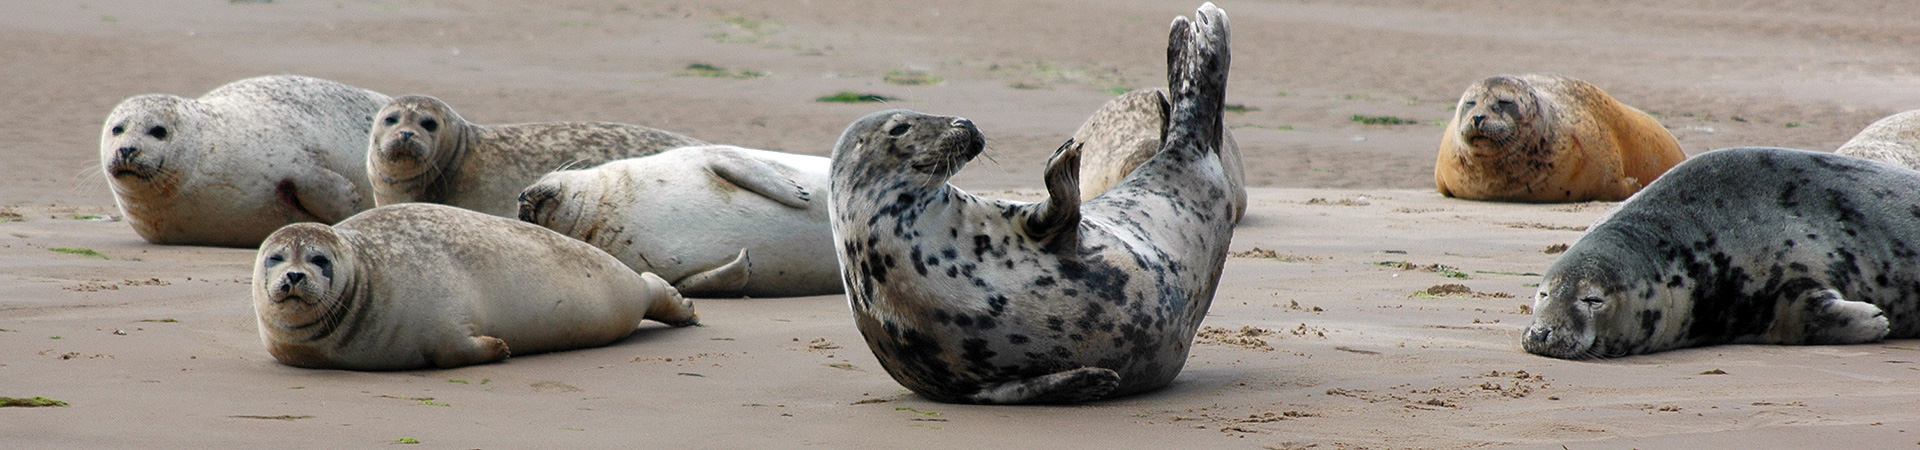 Grey Seals and Common Seals together on the sands at Blakeney Point